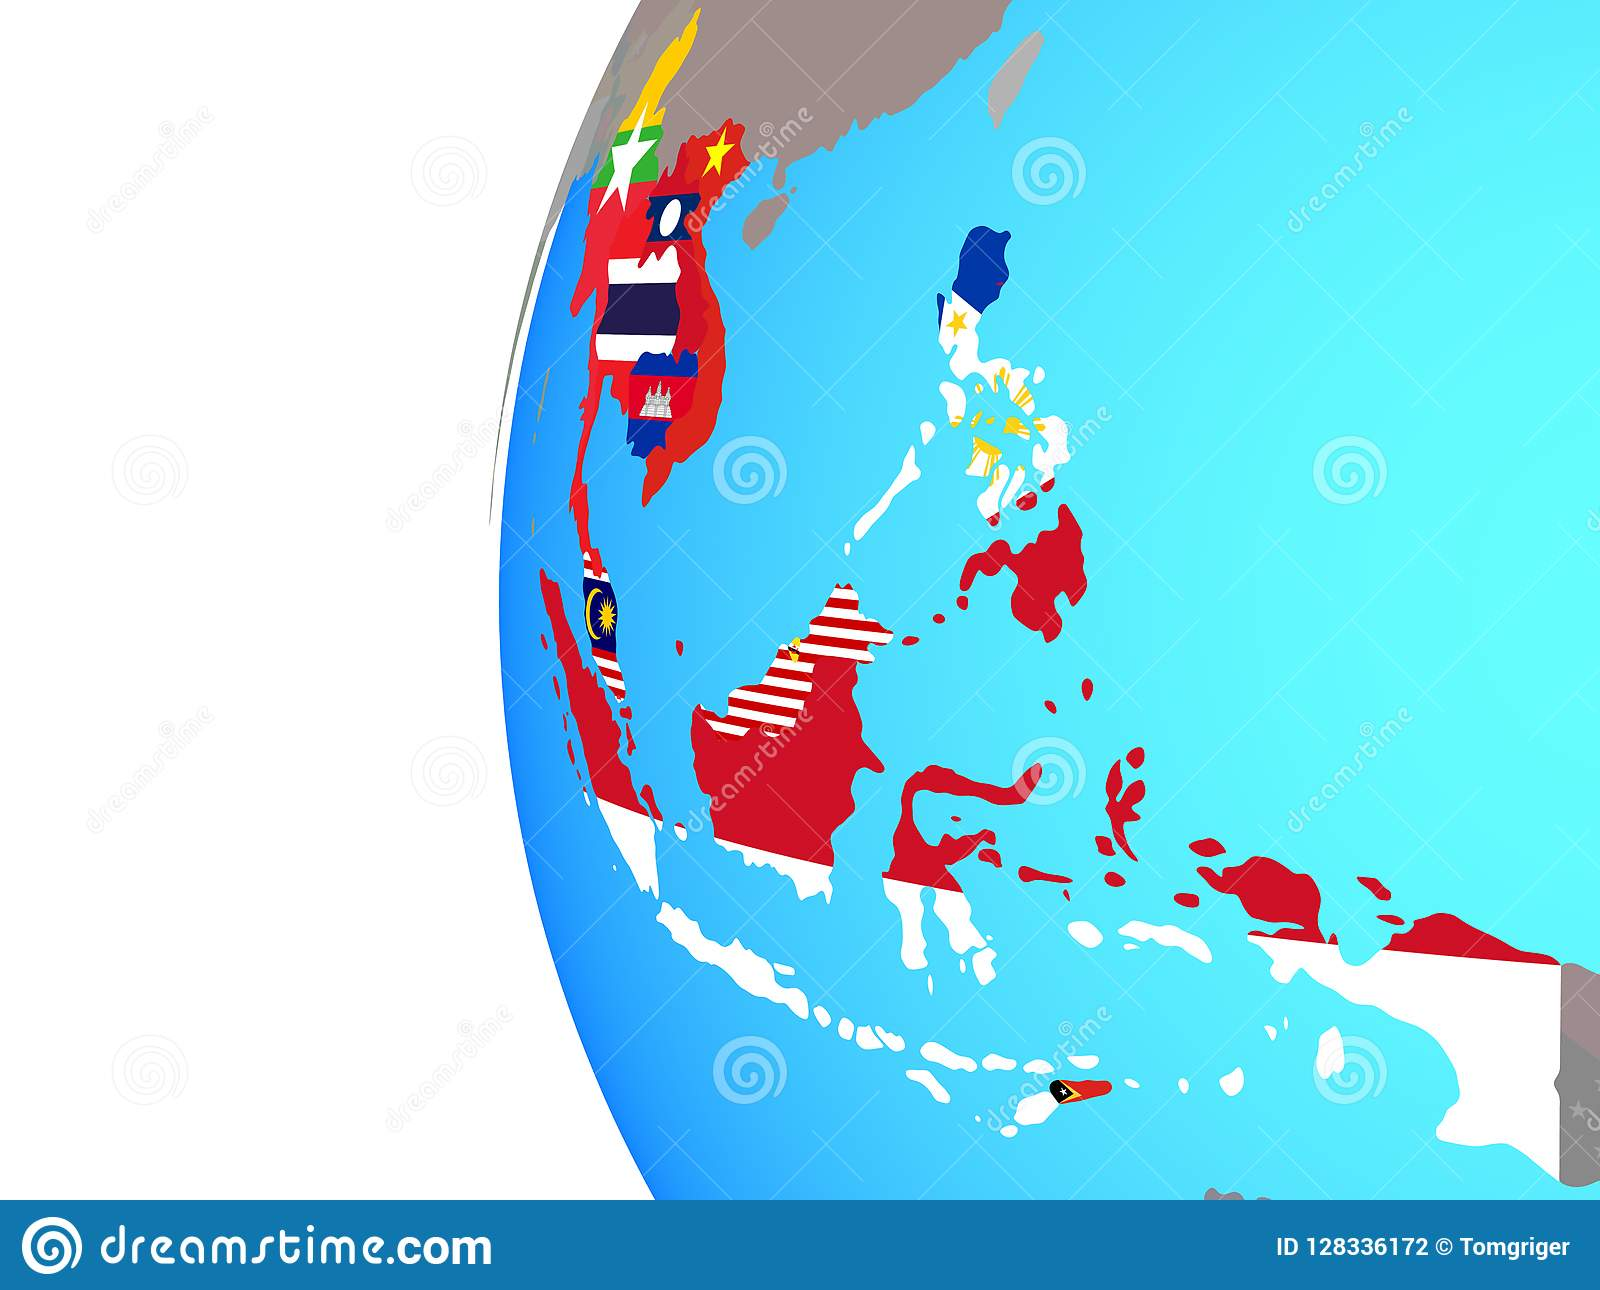 South East Asia With Flags On Globe Stock Illustration ... on map of world globe, map of north america globe, map of new zealand globe, map of middle east globe,